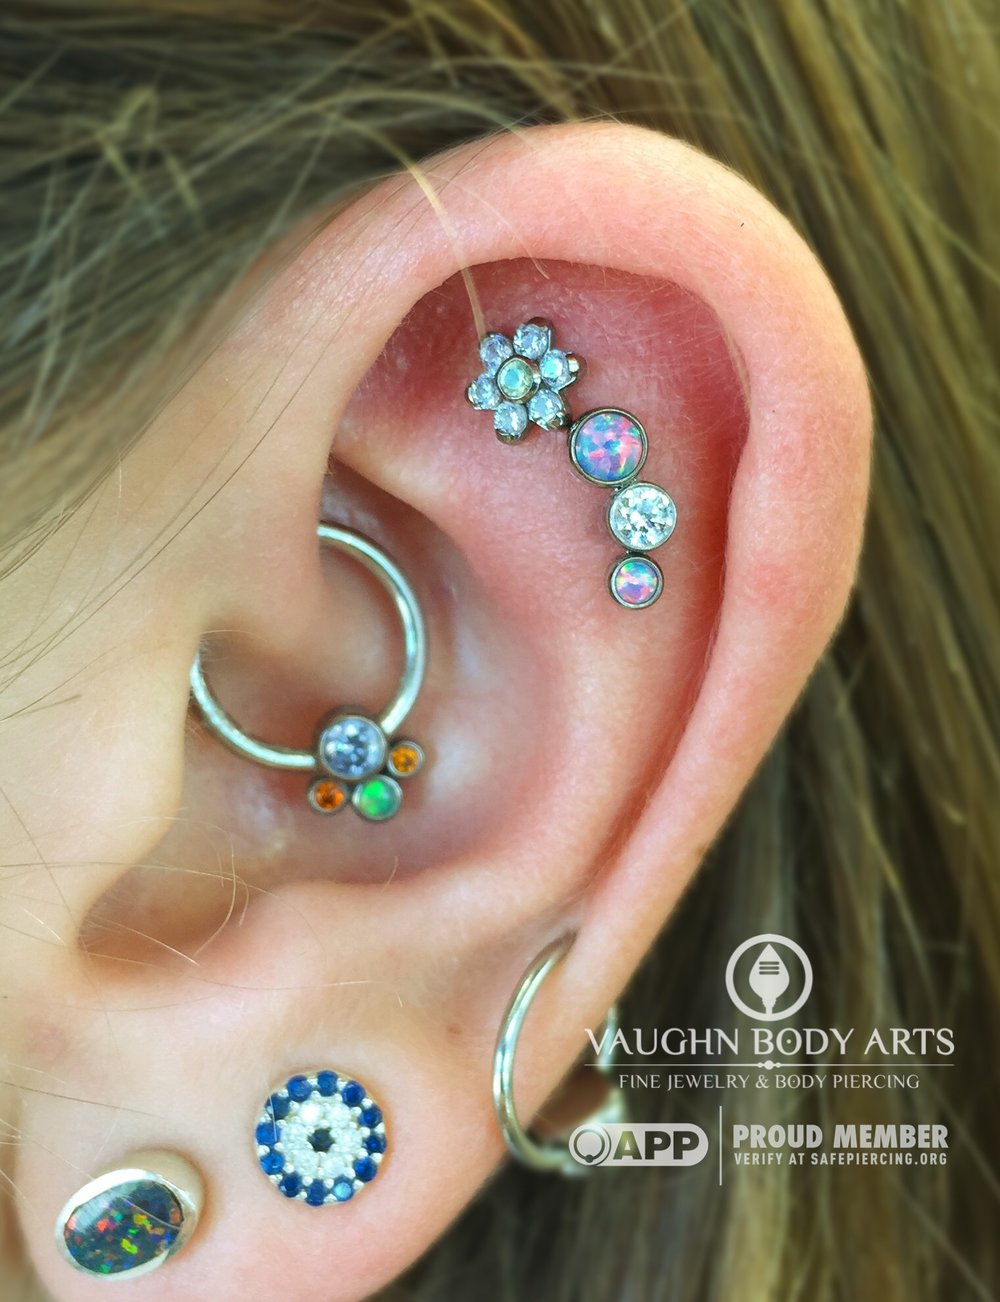 Helix piercings with titanium jewelry from Anatometal.